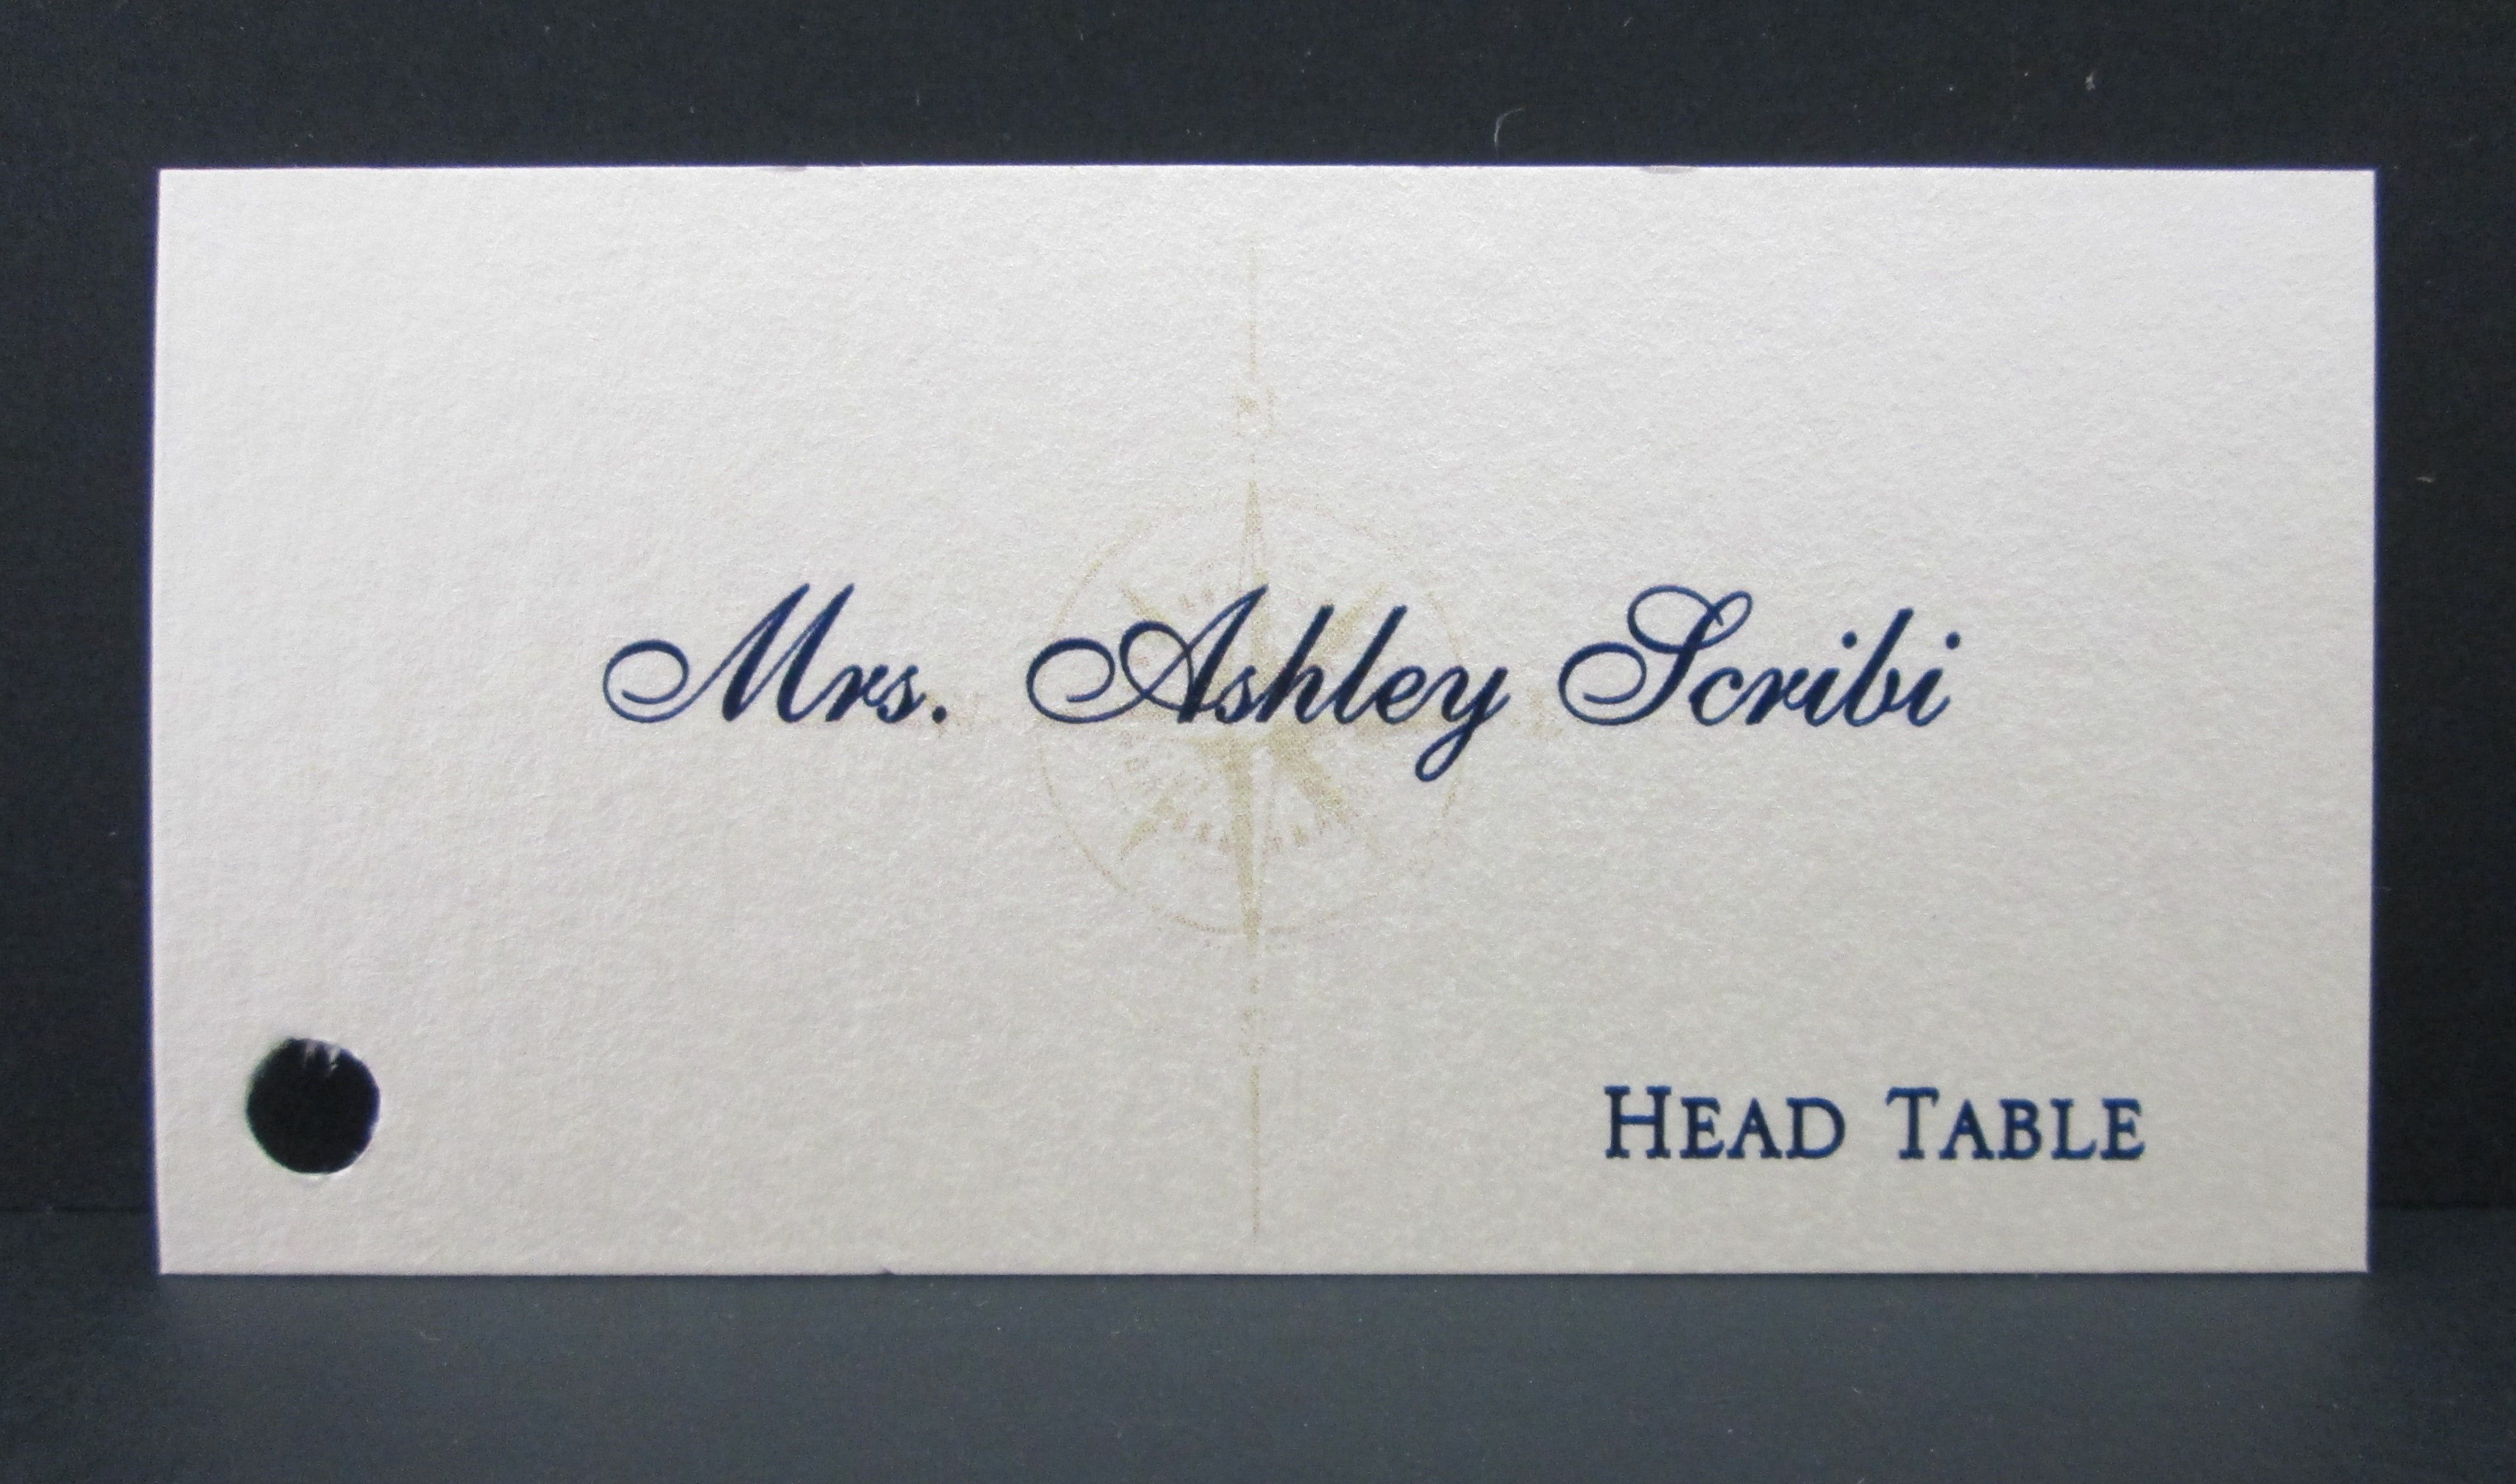 Flat place card with hole punched to attach to favor